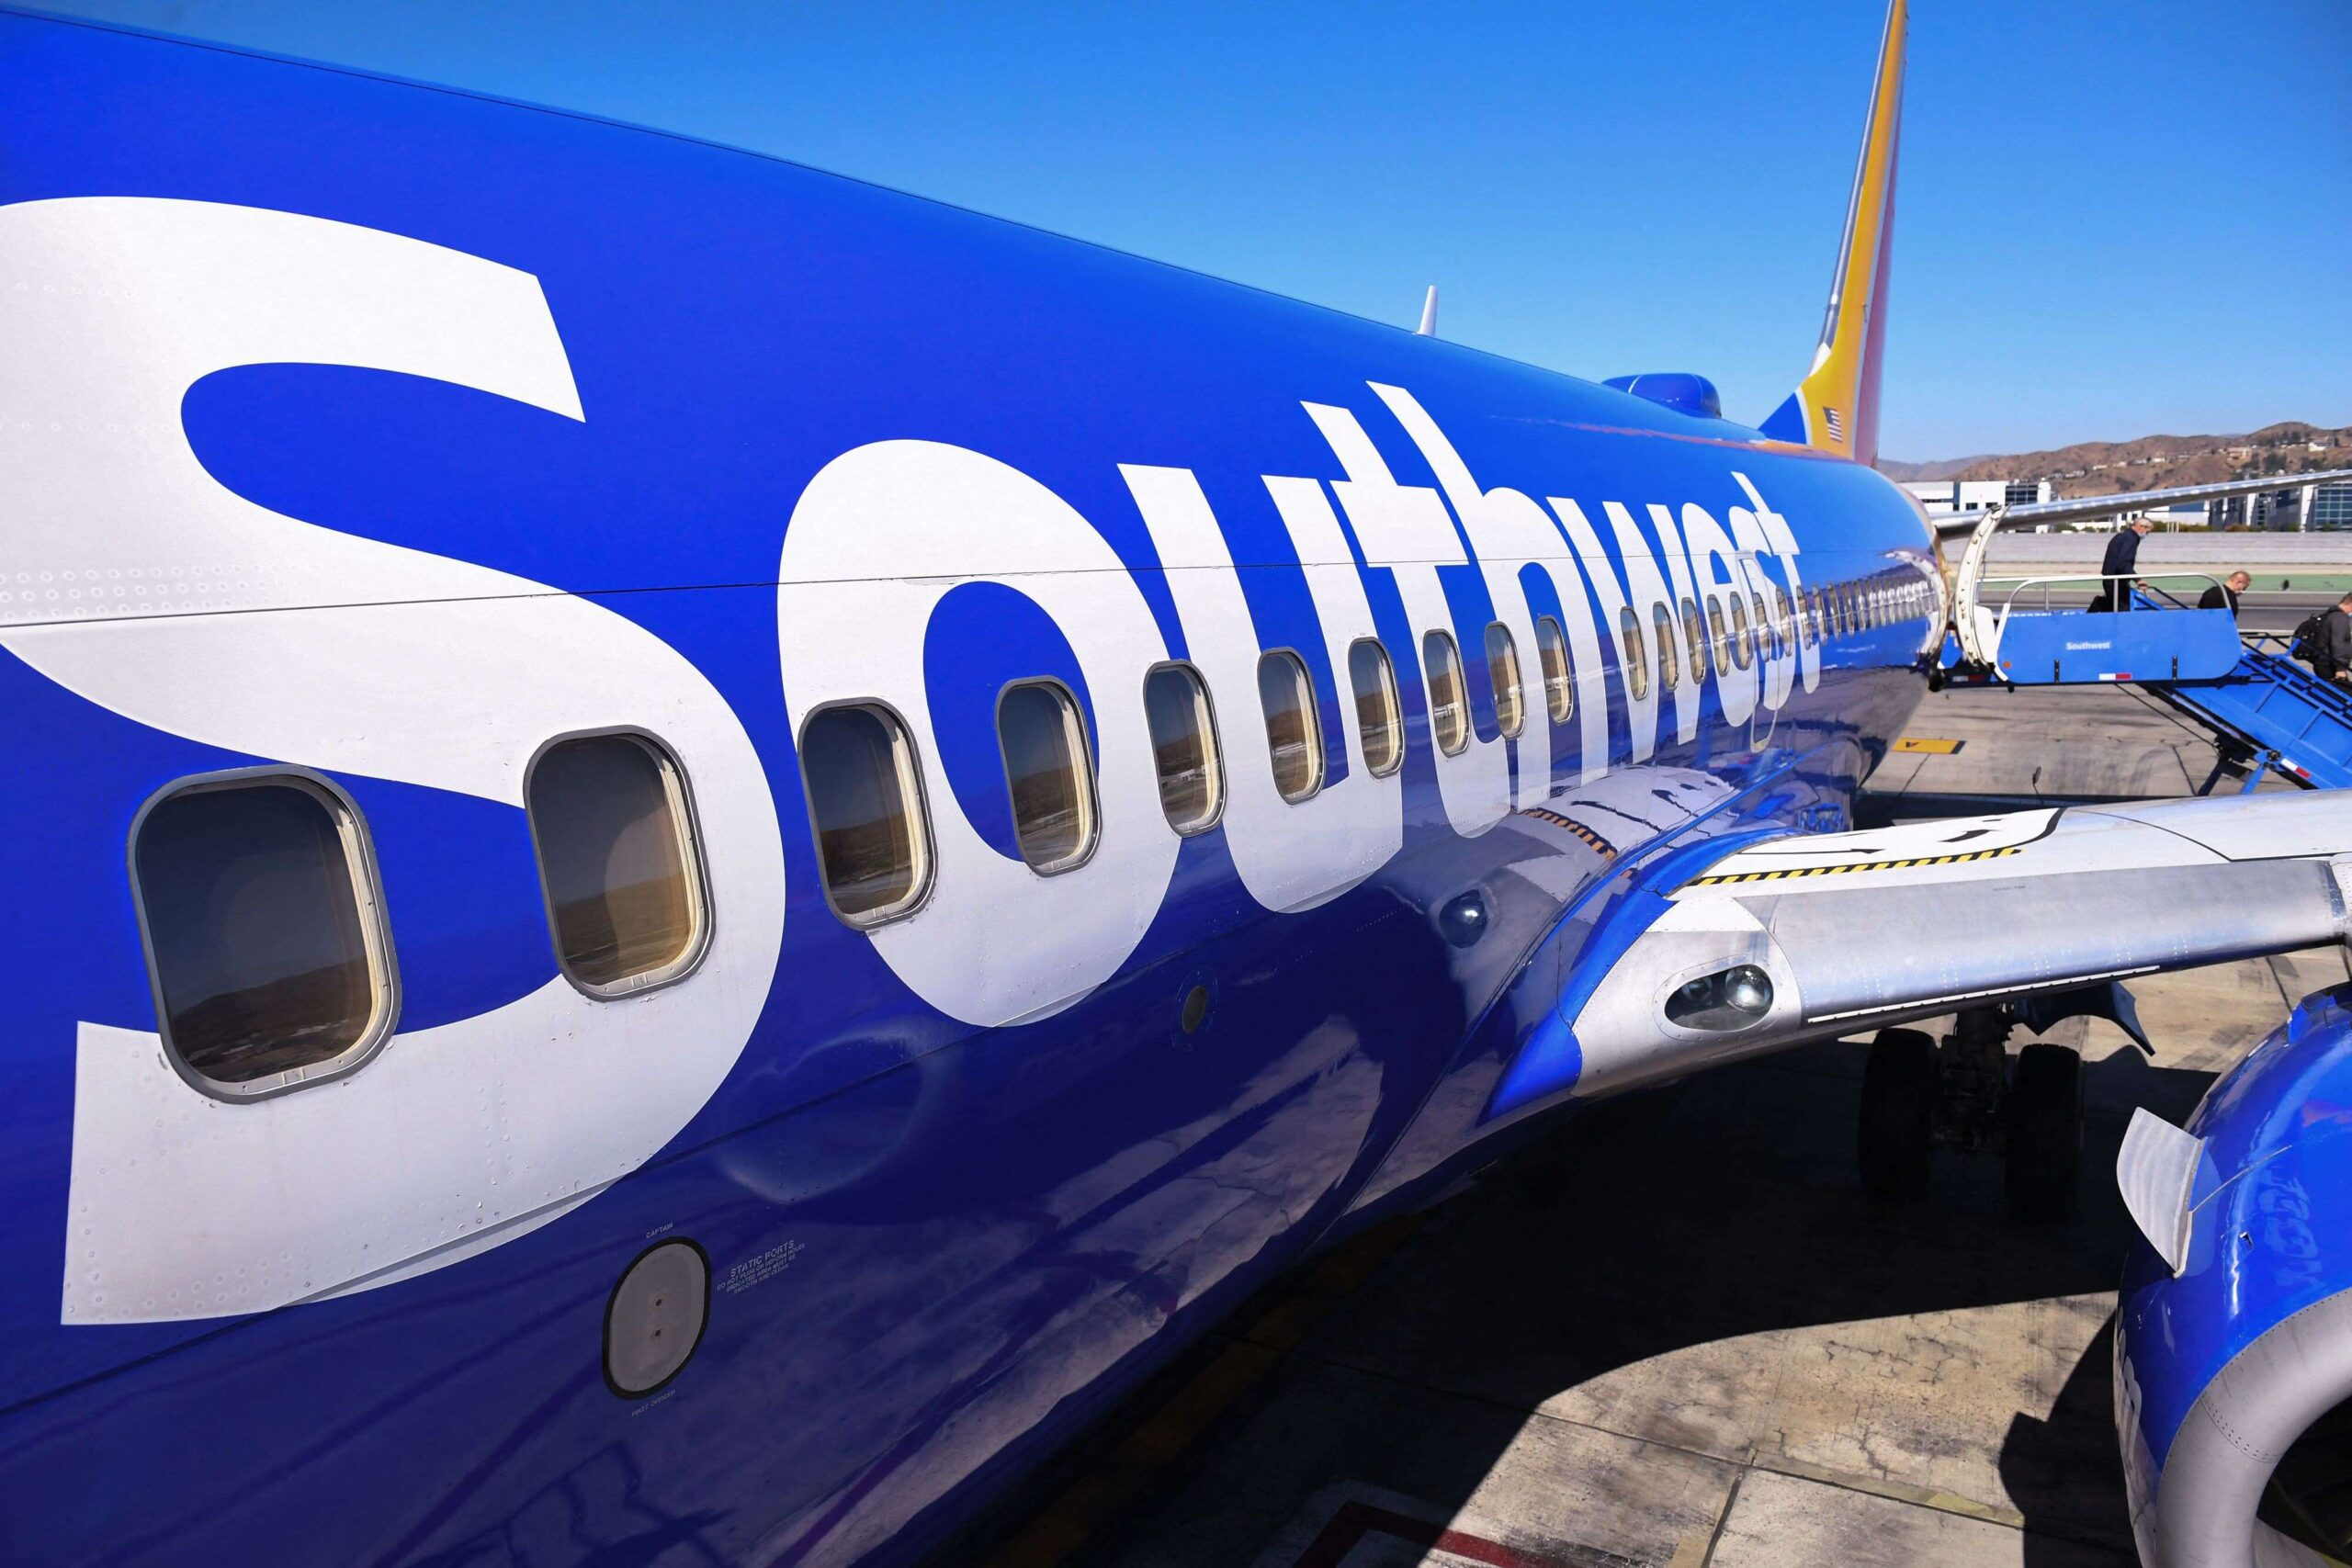 Southwest Airlines Cancels 1,800 Flights As Speculation Swirls